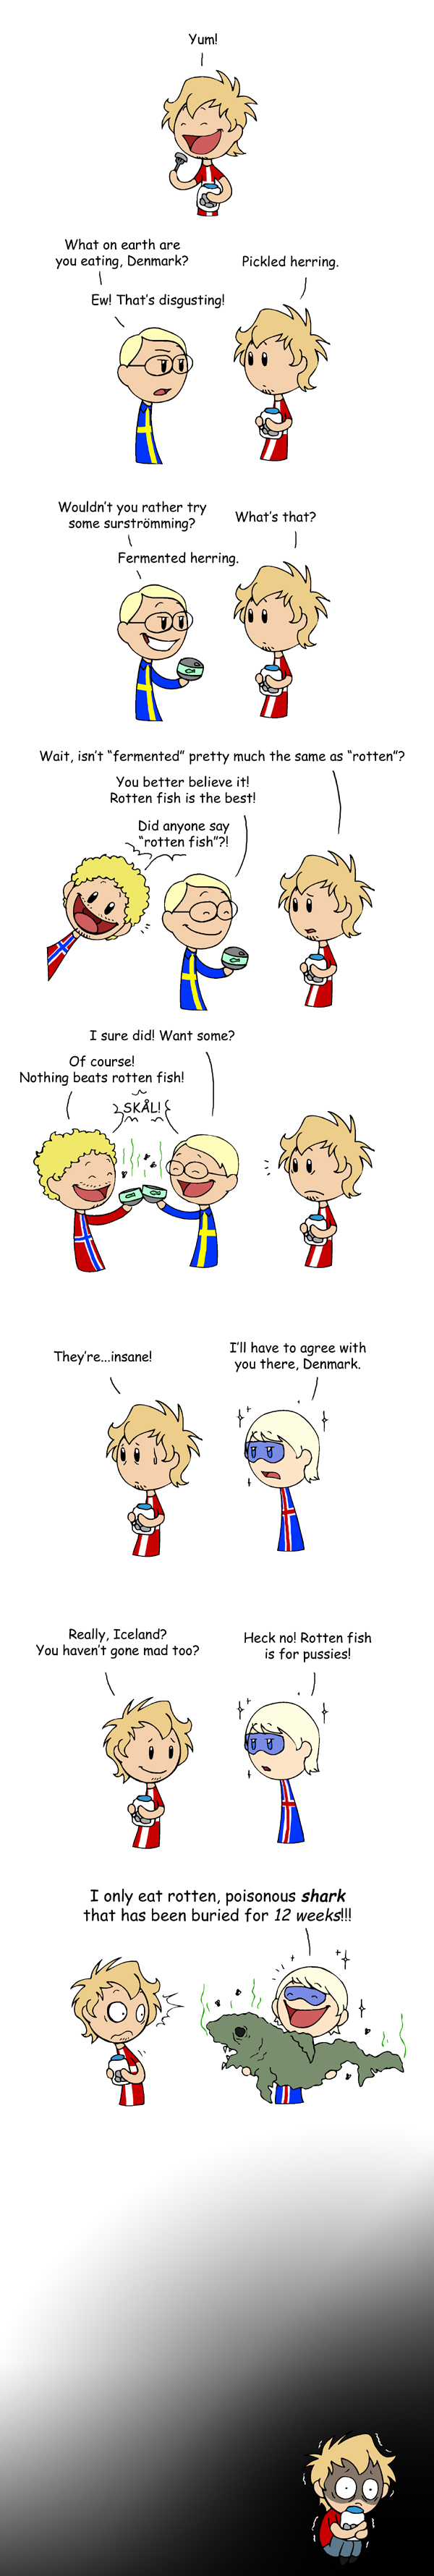 Nordics like Fish satwcomic.com